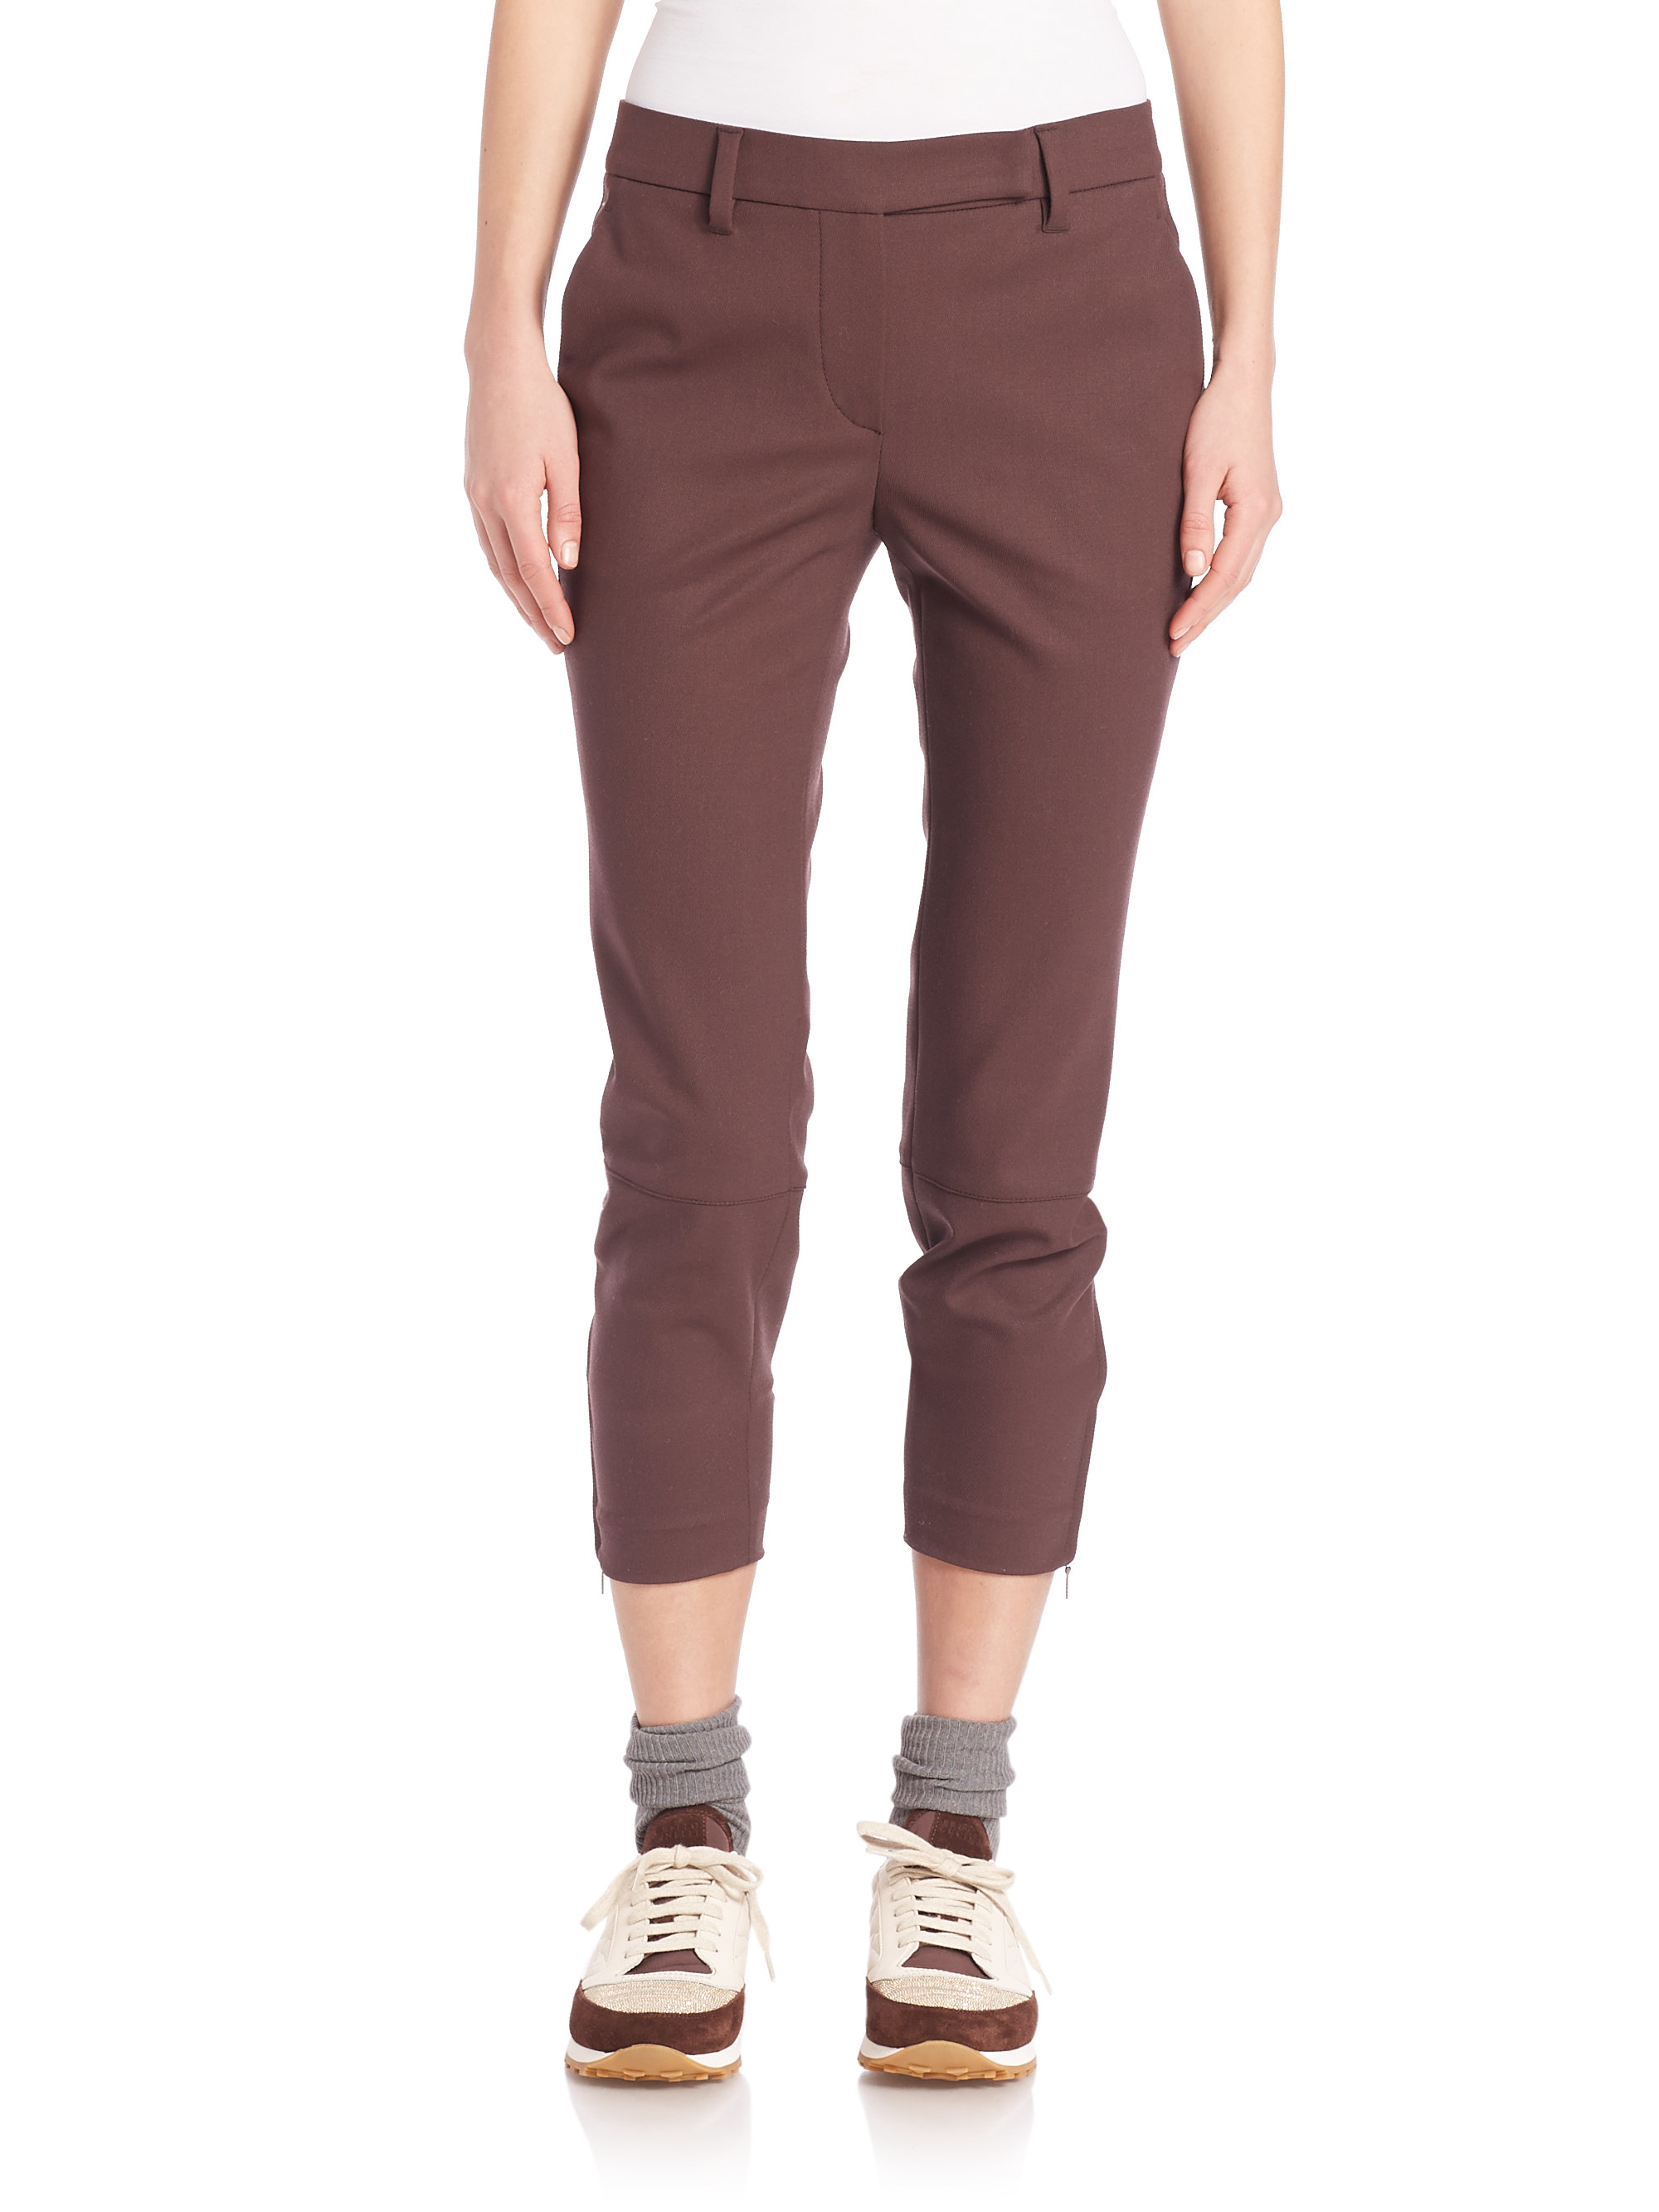 women s red ankle pants photo - 2